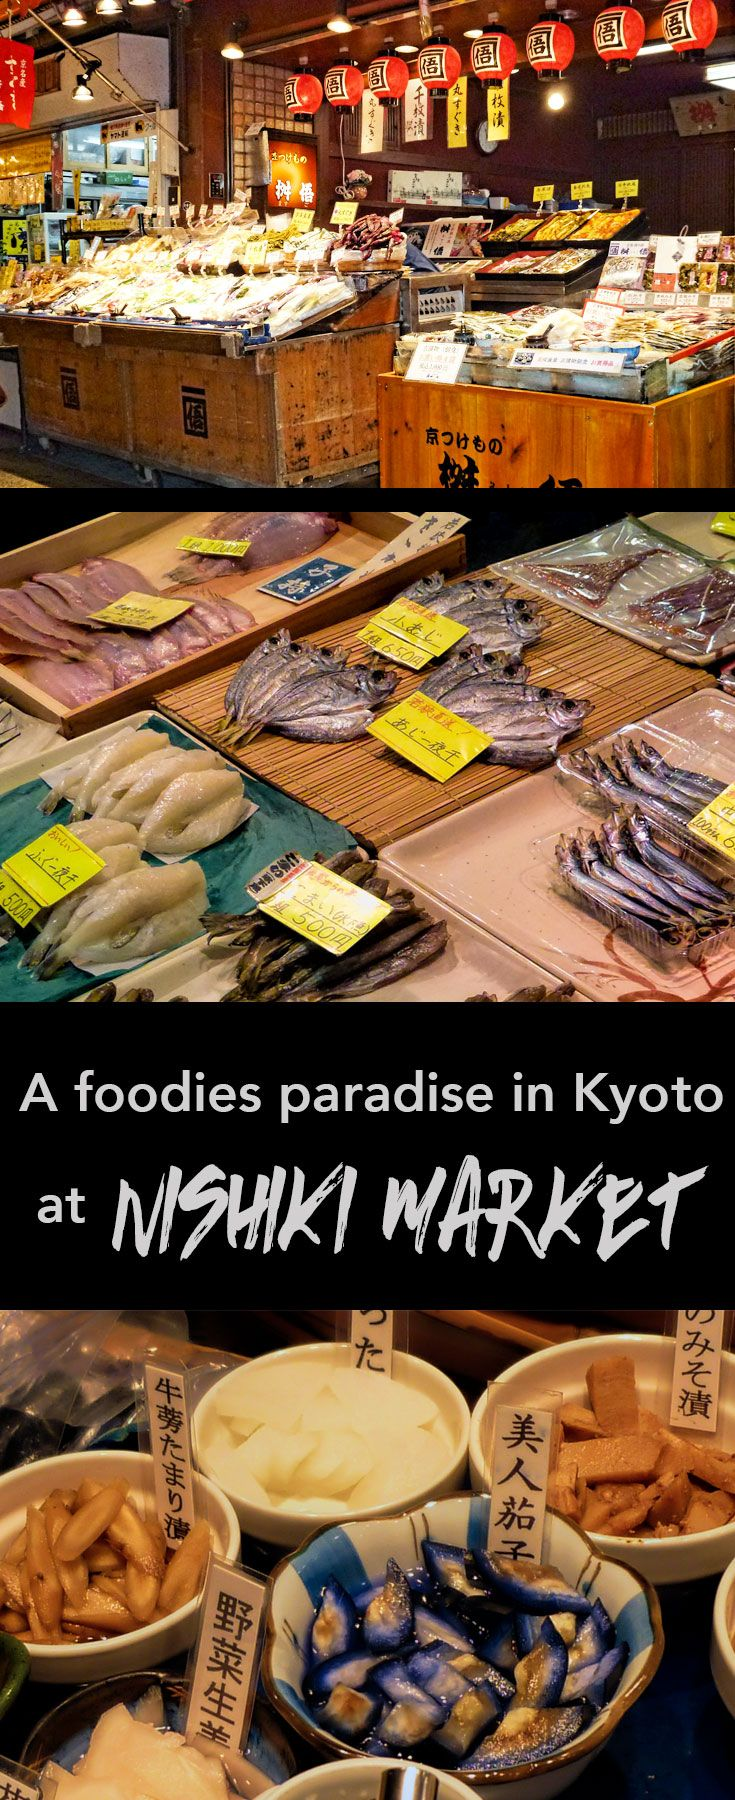 If you're a foodie or cultural traveller you need to find a little time in Kyoto city (Japan) to visit this historic market and give your taste buds a treat with a few unique and special tasters along the way,